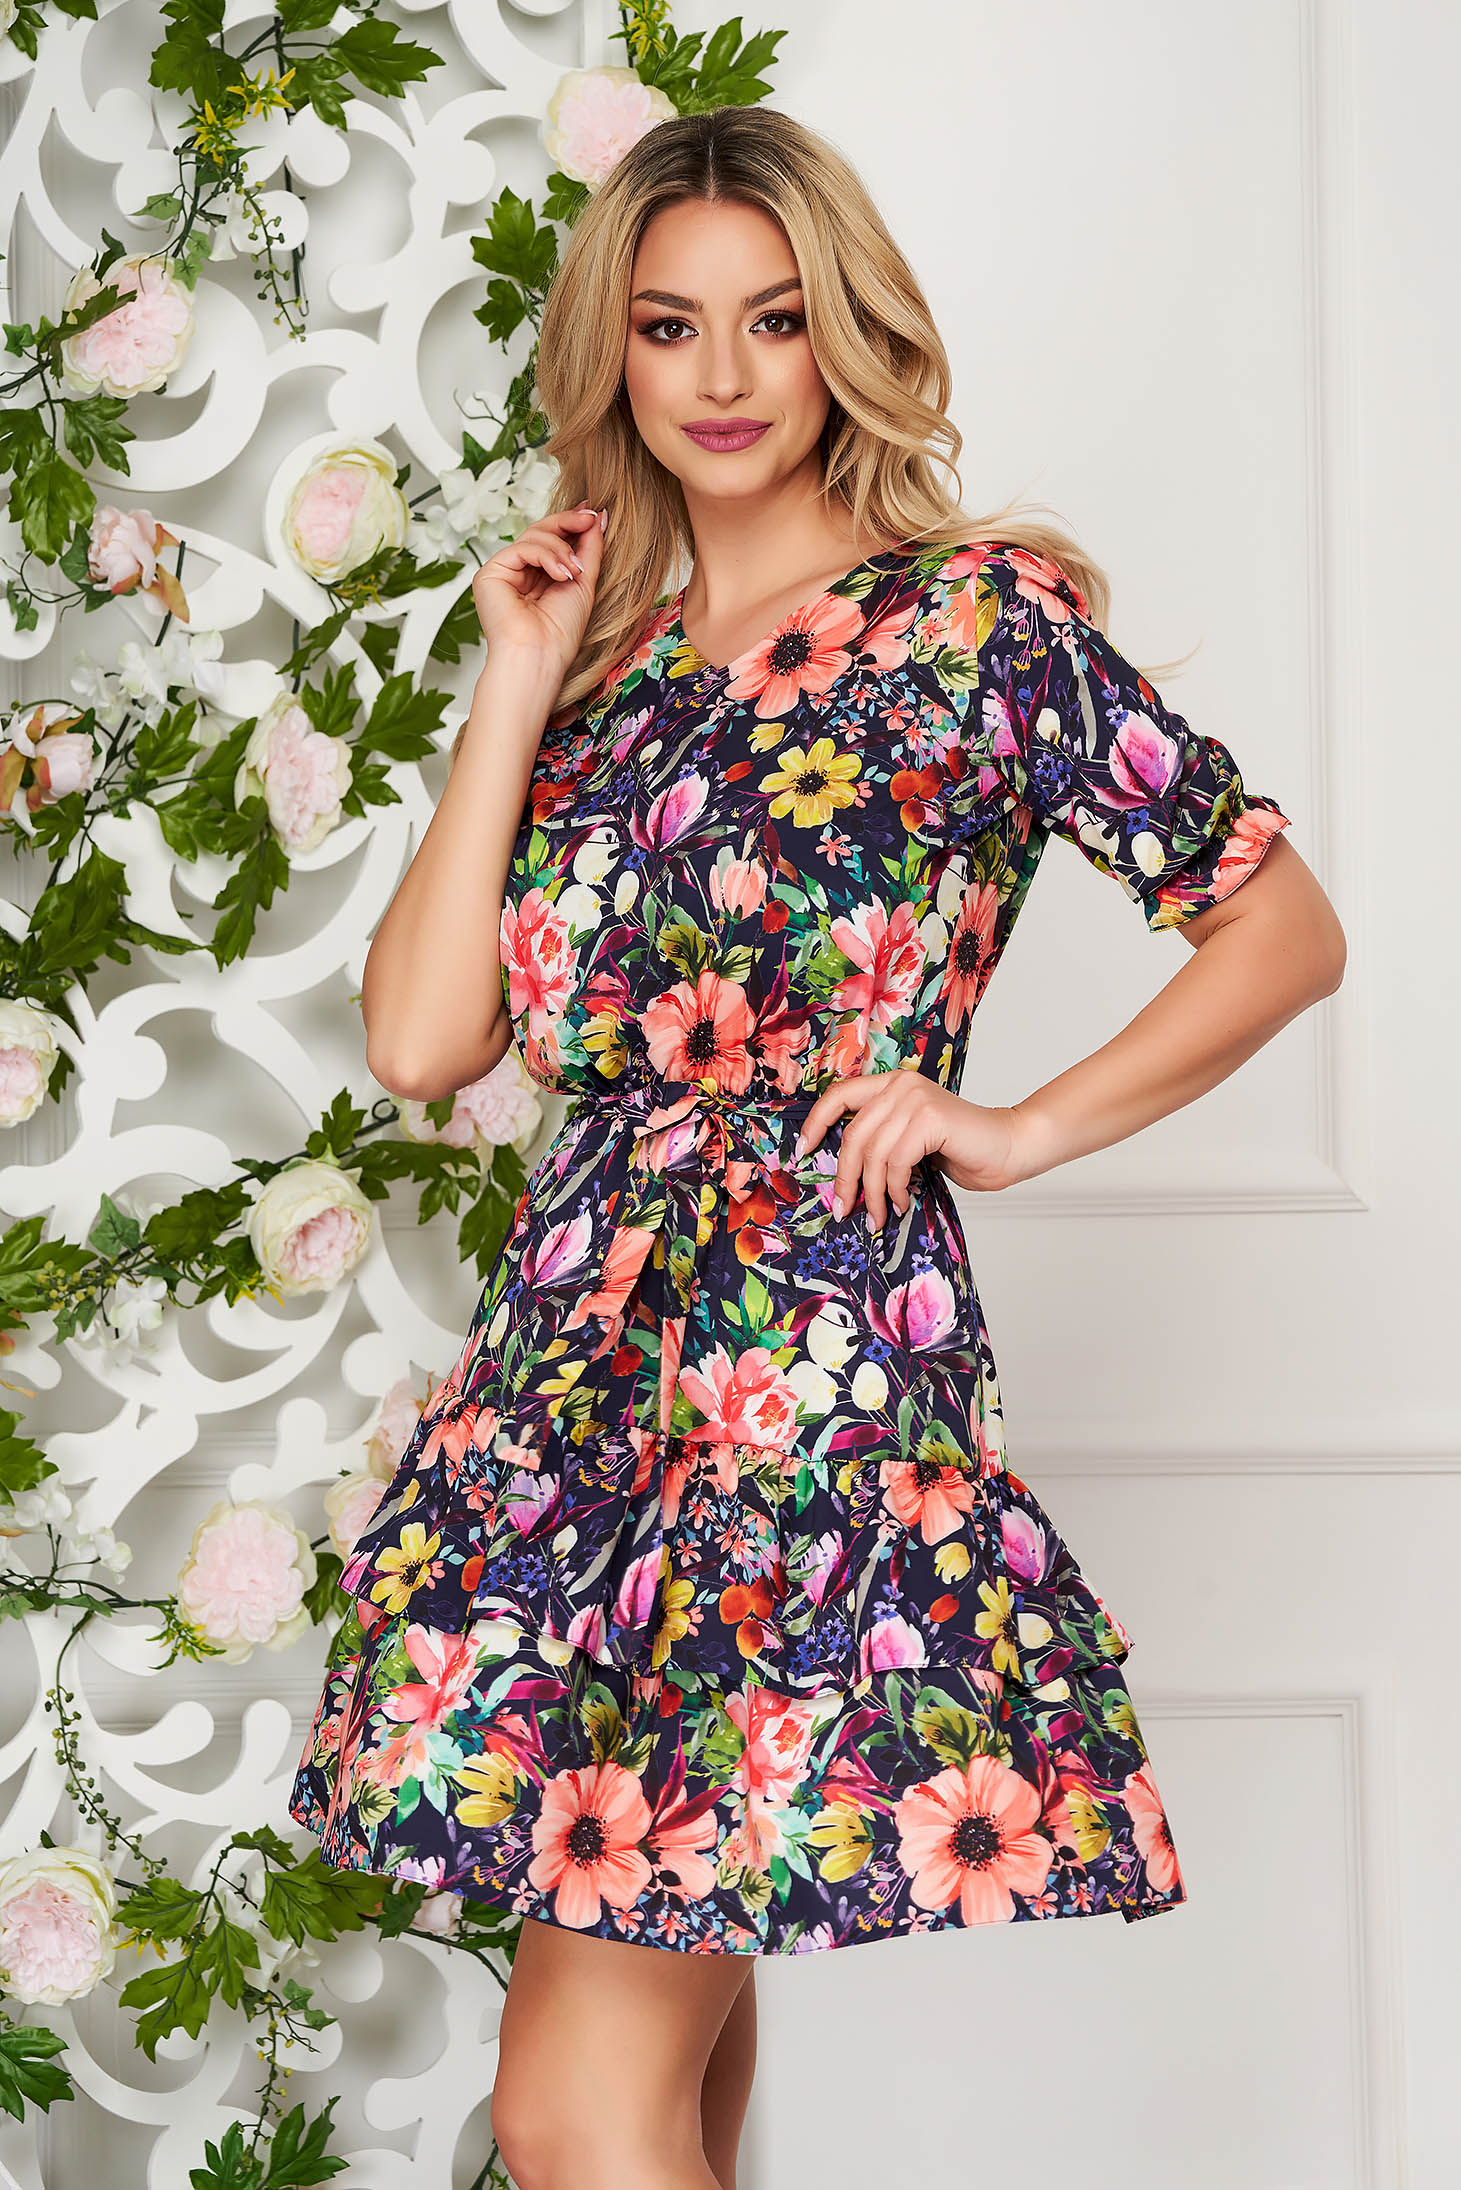 StarShinerS darkblue dress daily short cut thin fabric with floral print